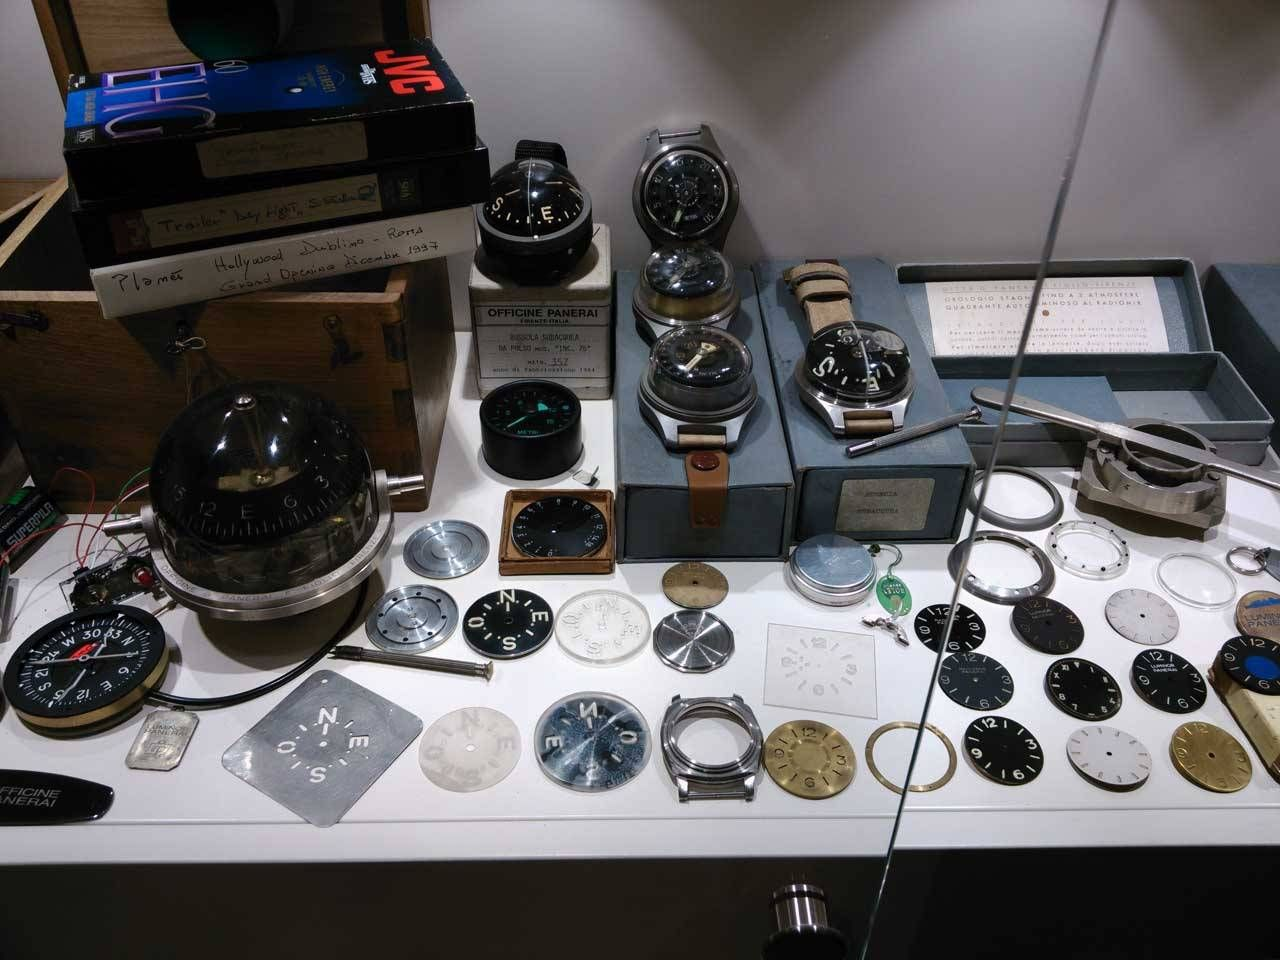 patton and historic h patek display in by to nyc dimaggio george news mo ellington owned philippe duke watches joe